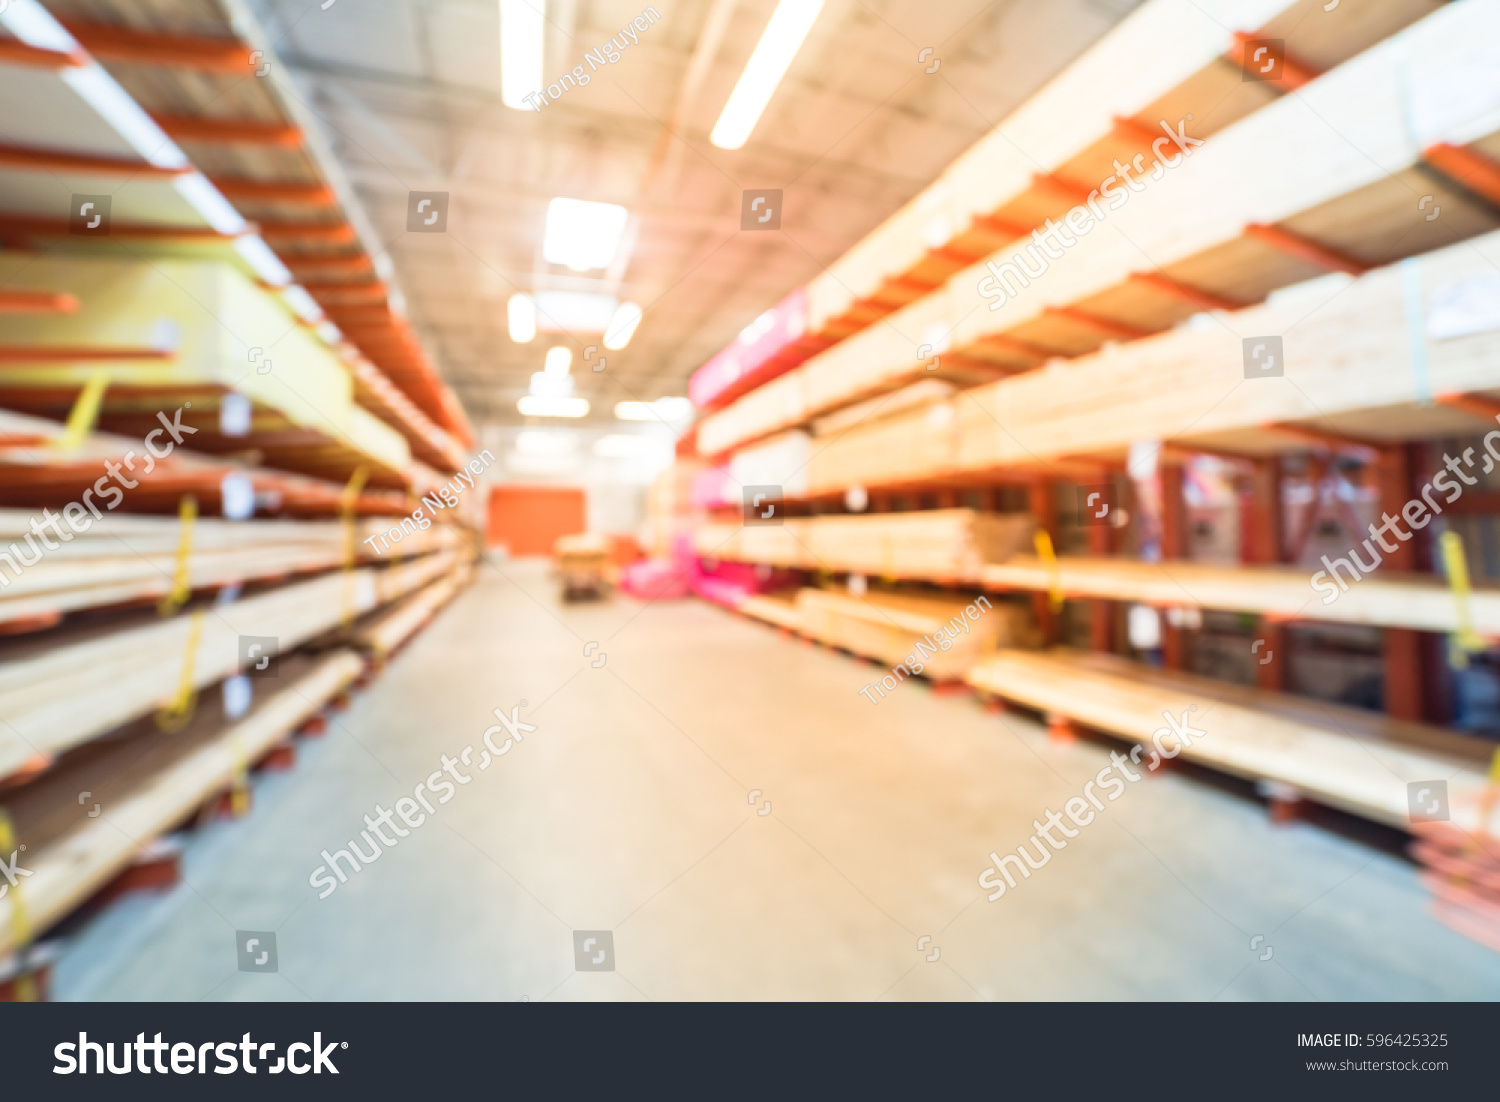 Blurred Stack New Wooden Bars On Stock Photo 596425325